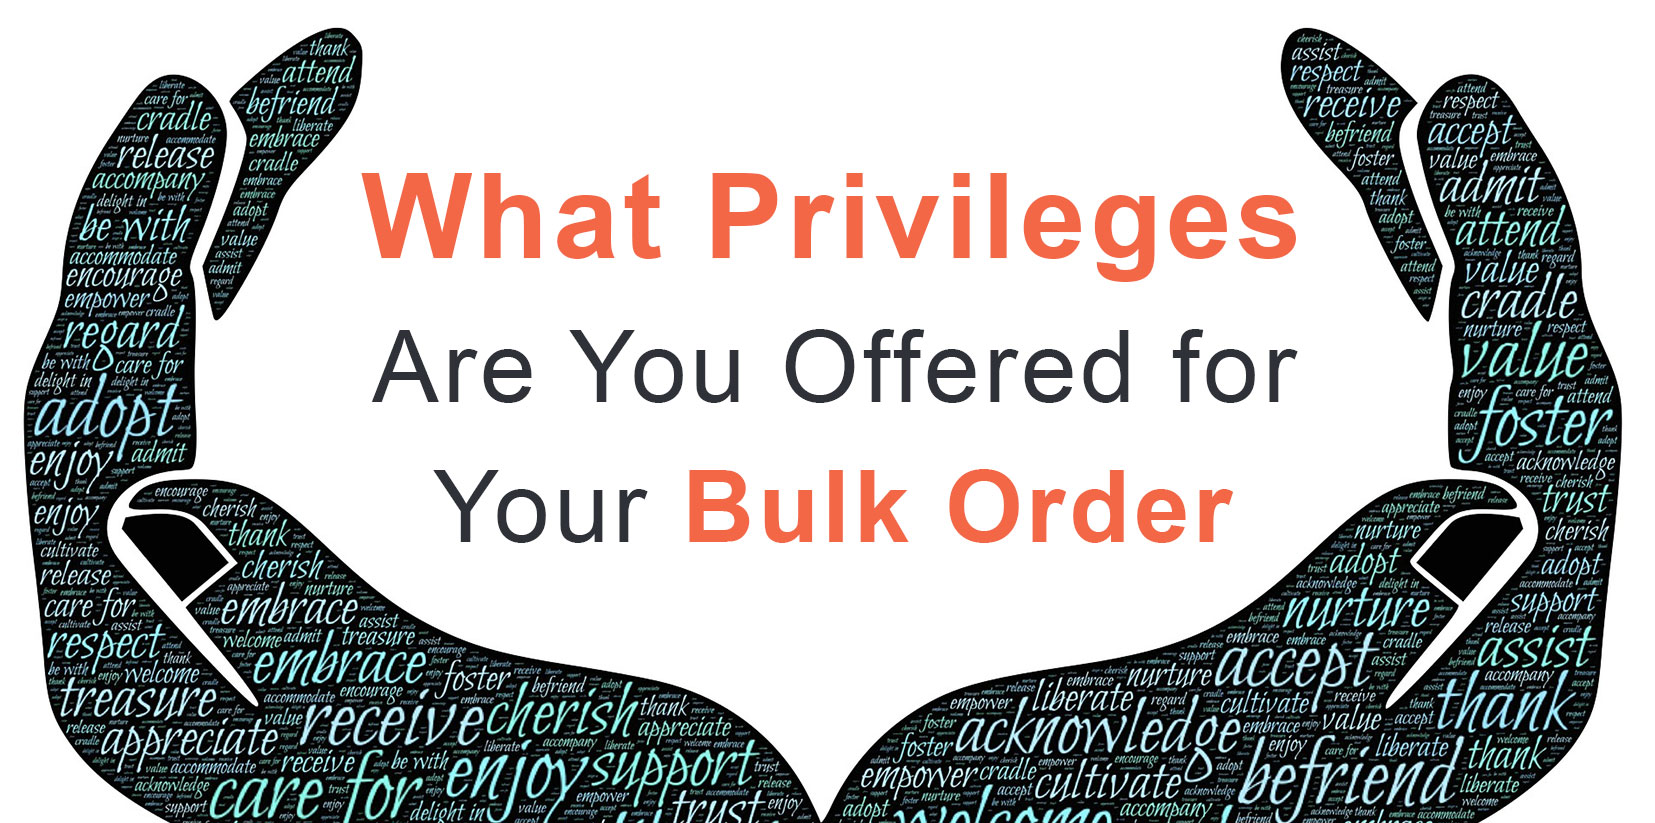 What Privileges Are You Offered for Your Bulk Order